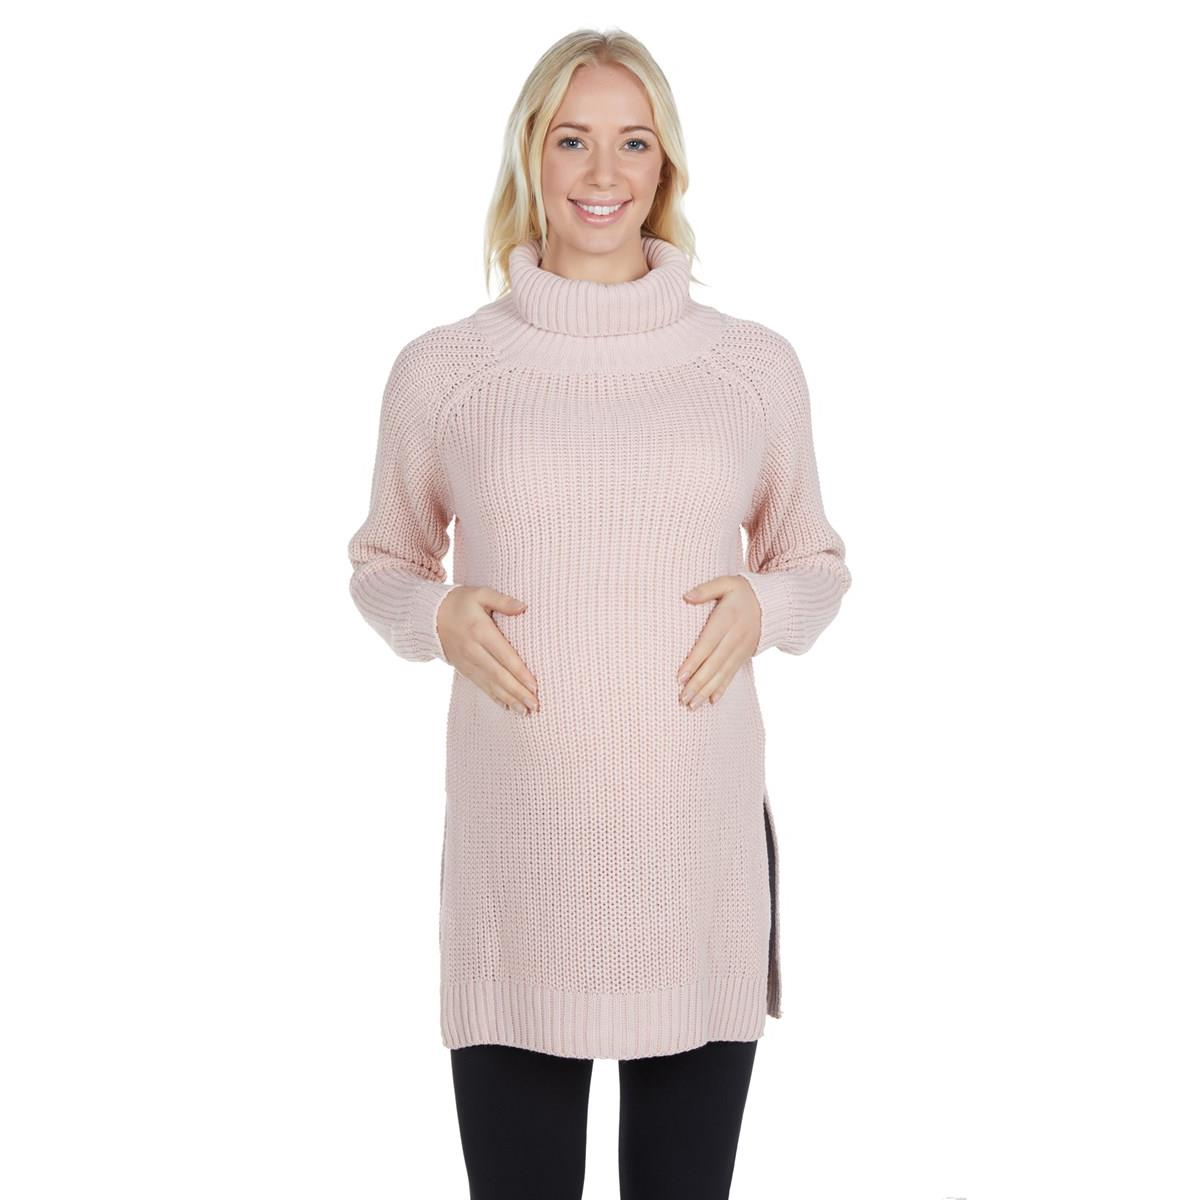 LuvmaBelly Pregnant 7125_7127 Sweater